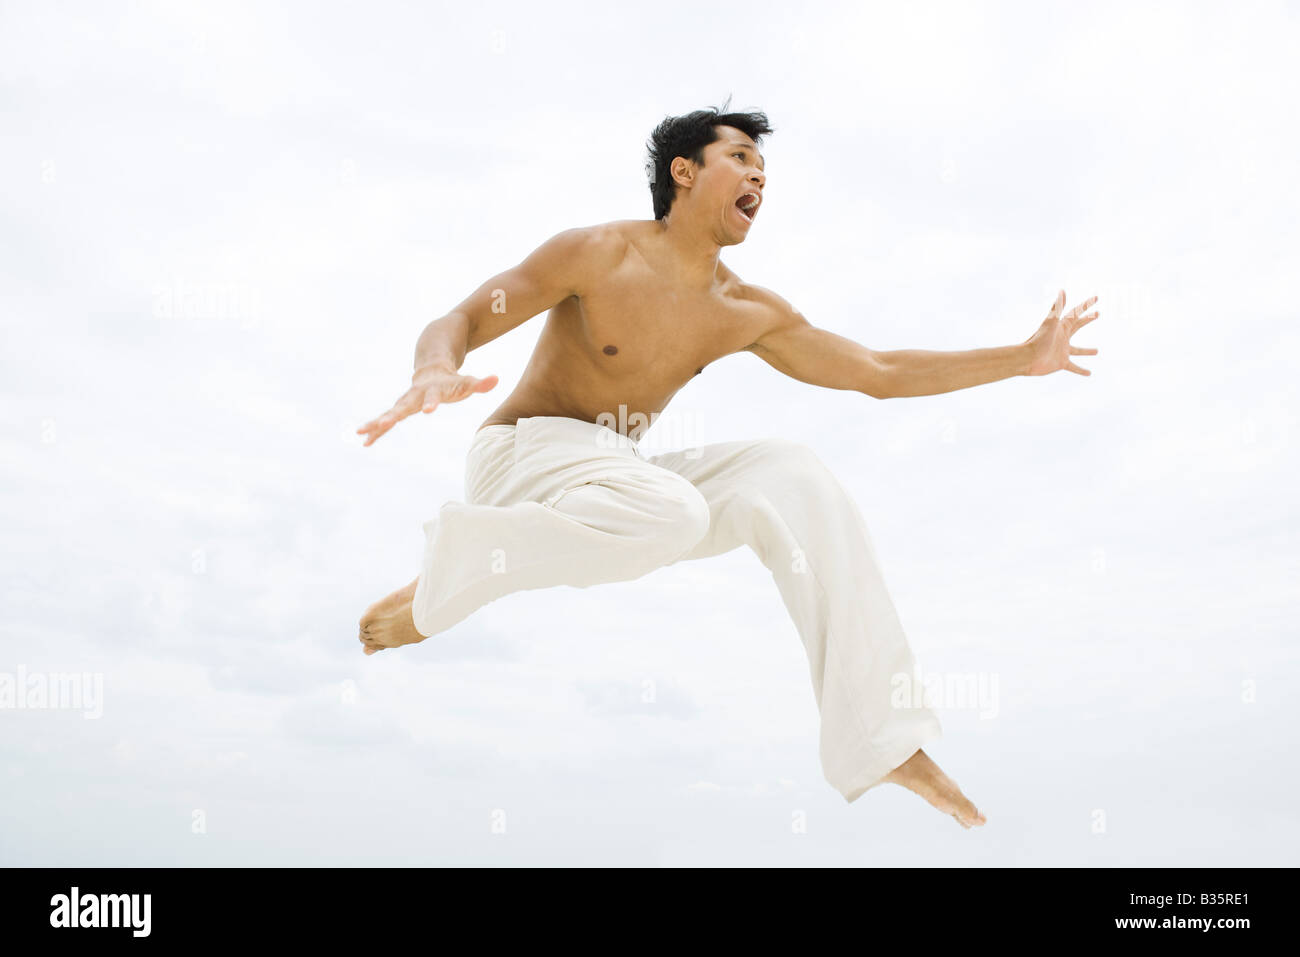 Man leaping in the air, side view - Stock Image